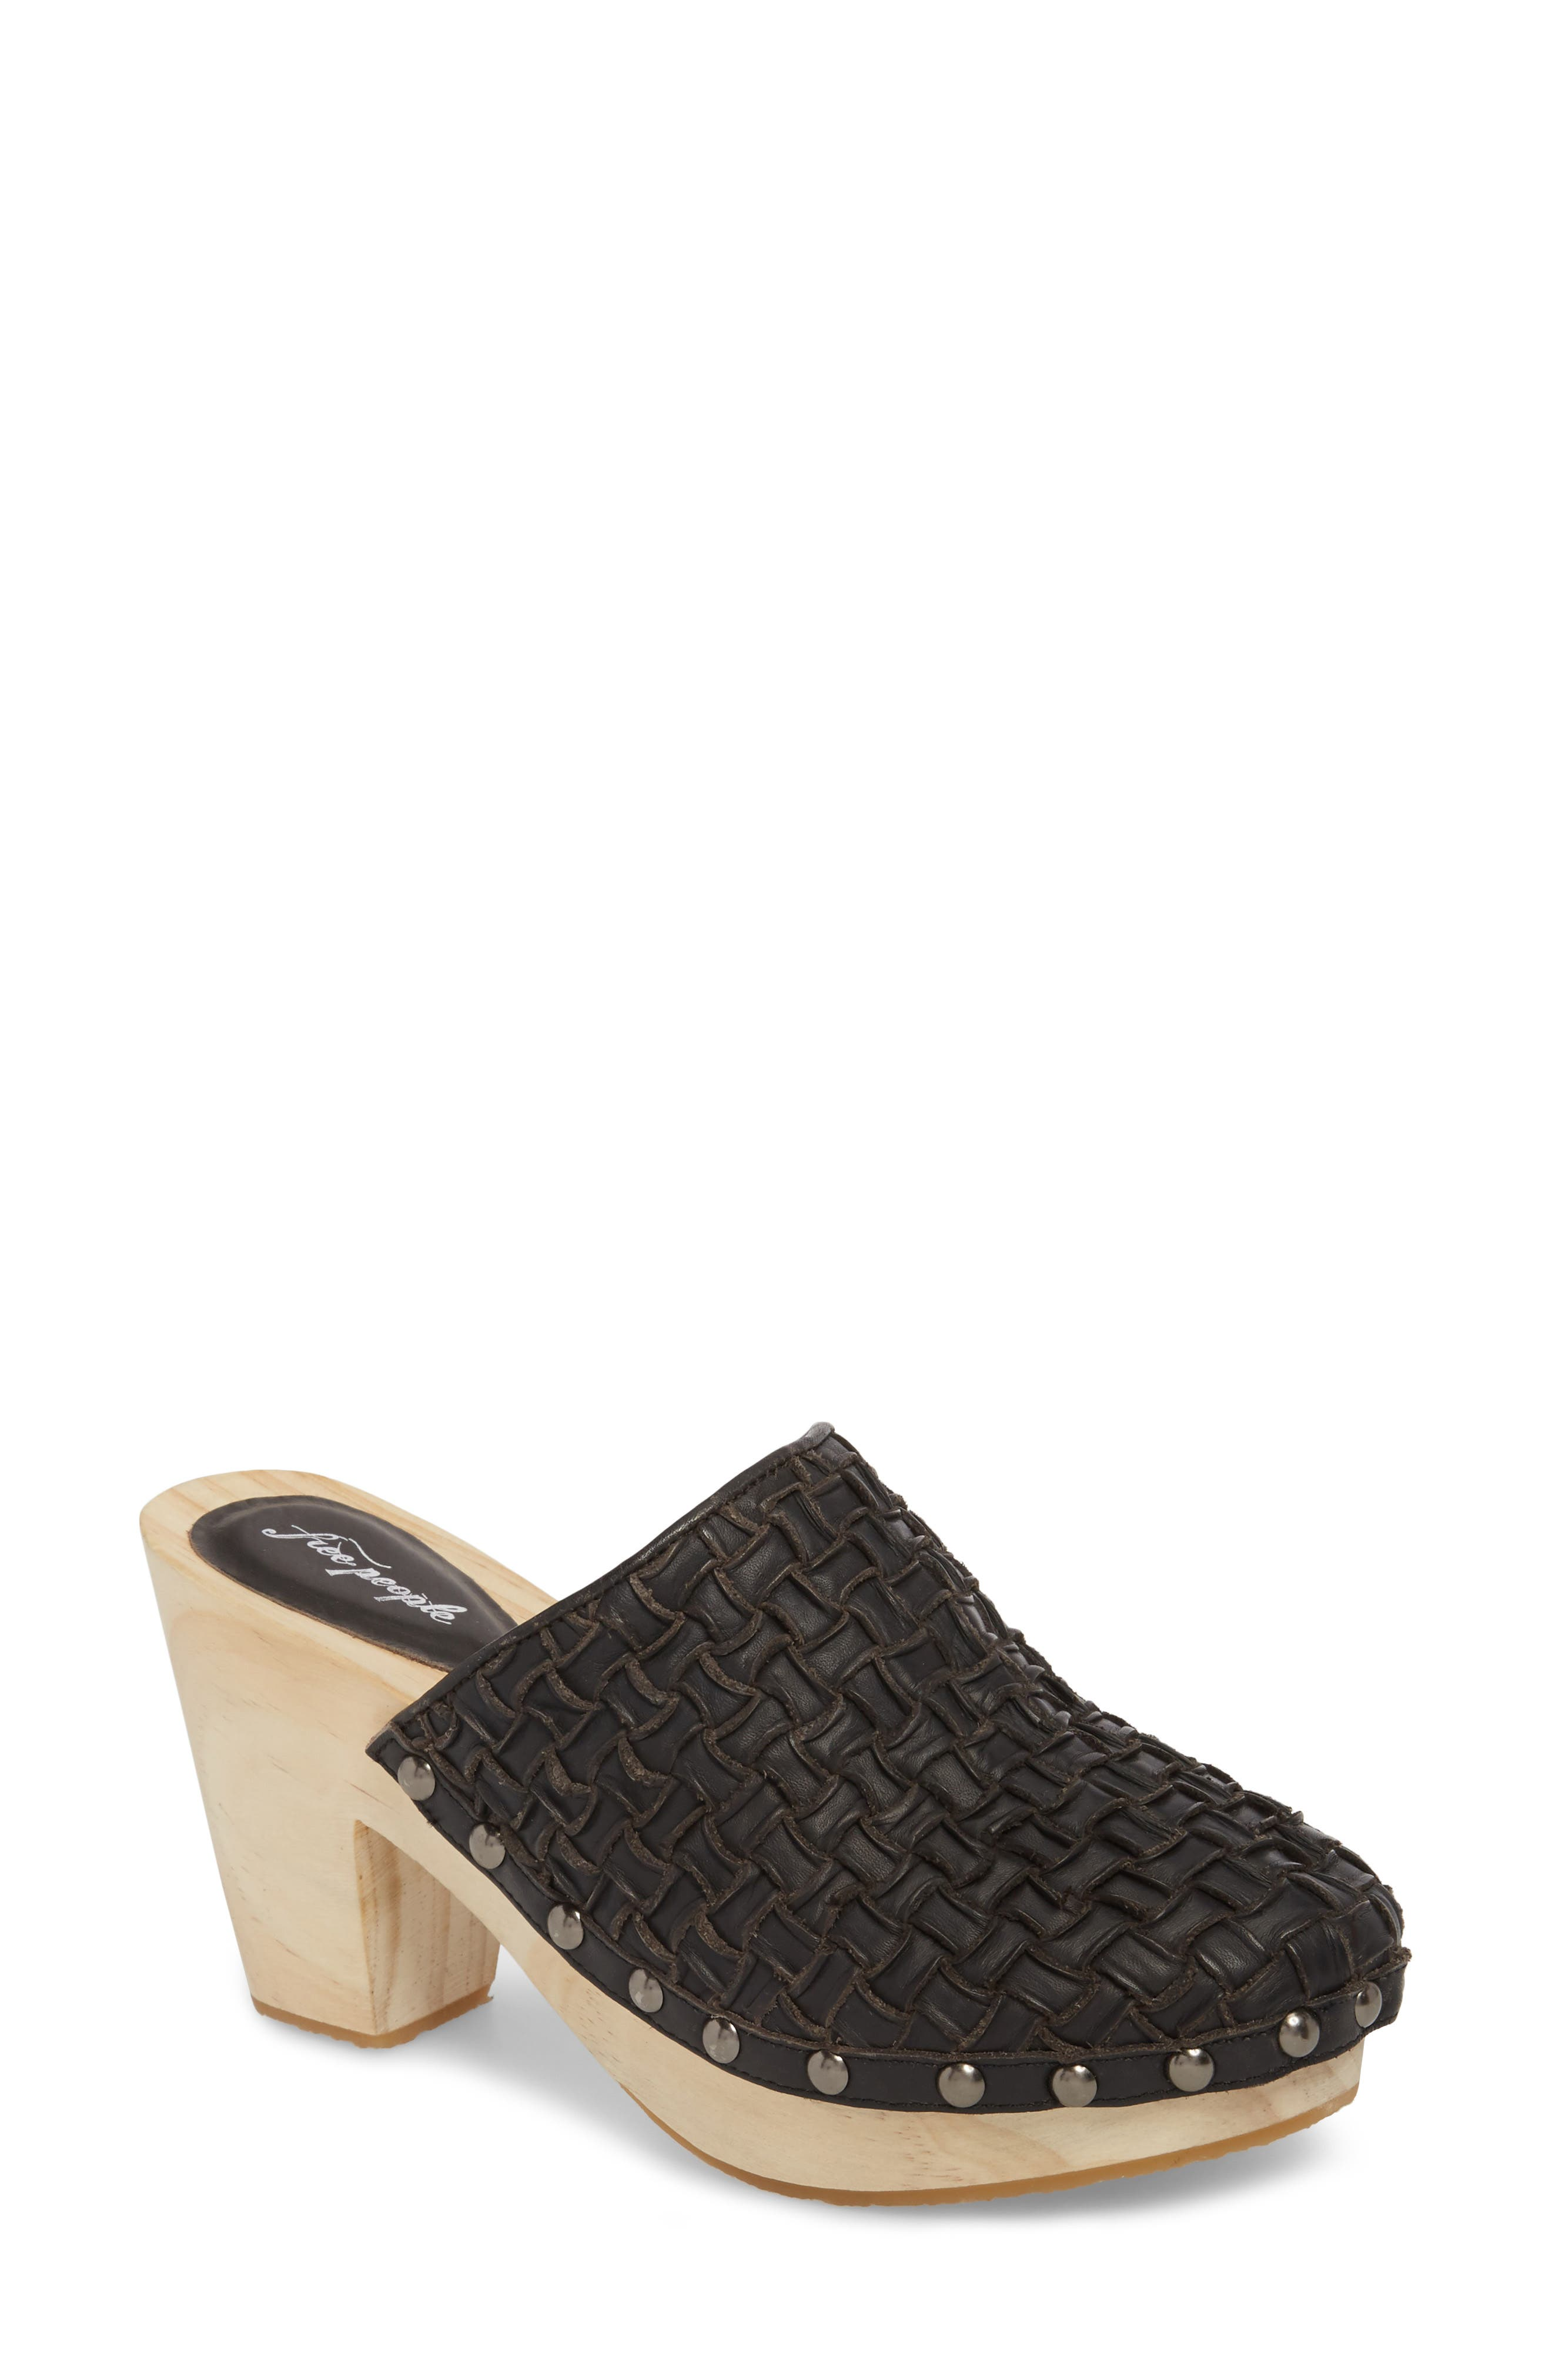 FREE PEOPLE Adelaide Clog, Main, color, 001